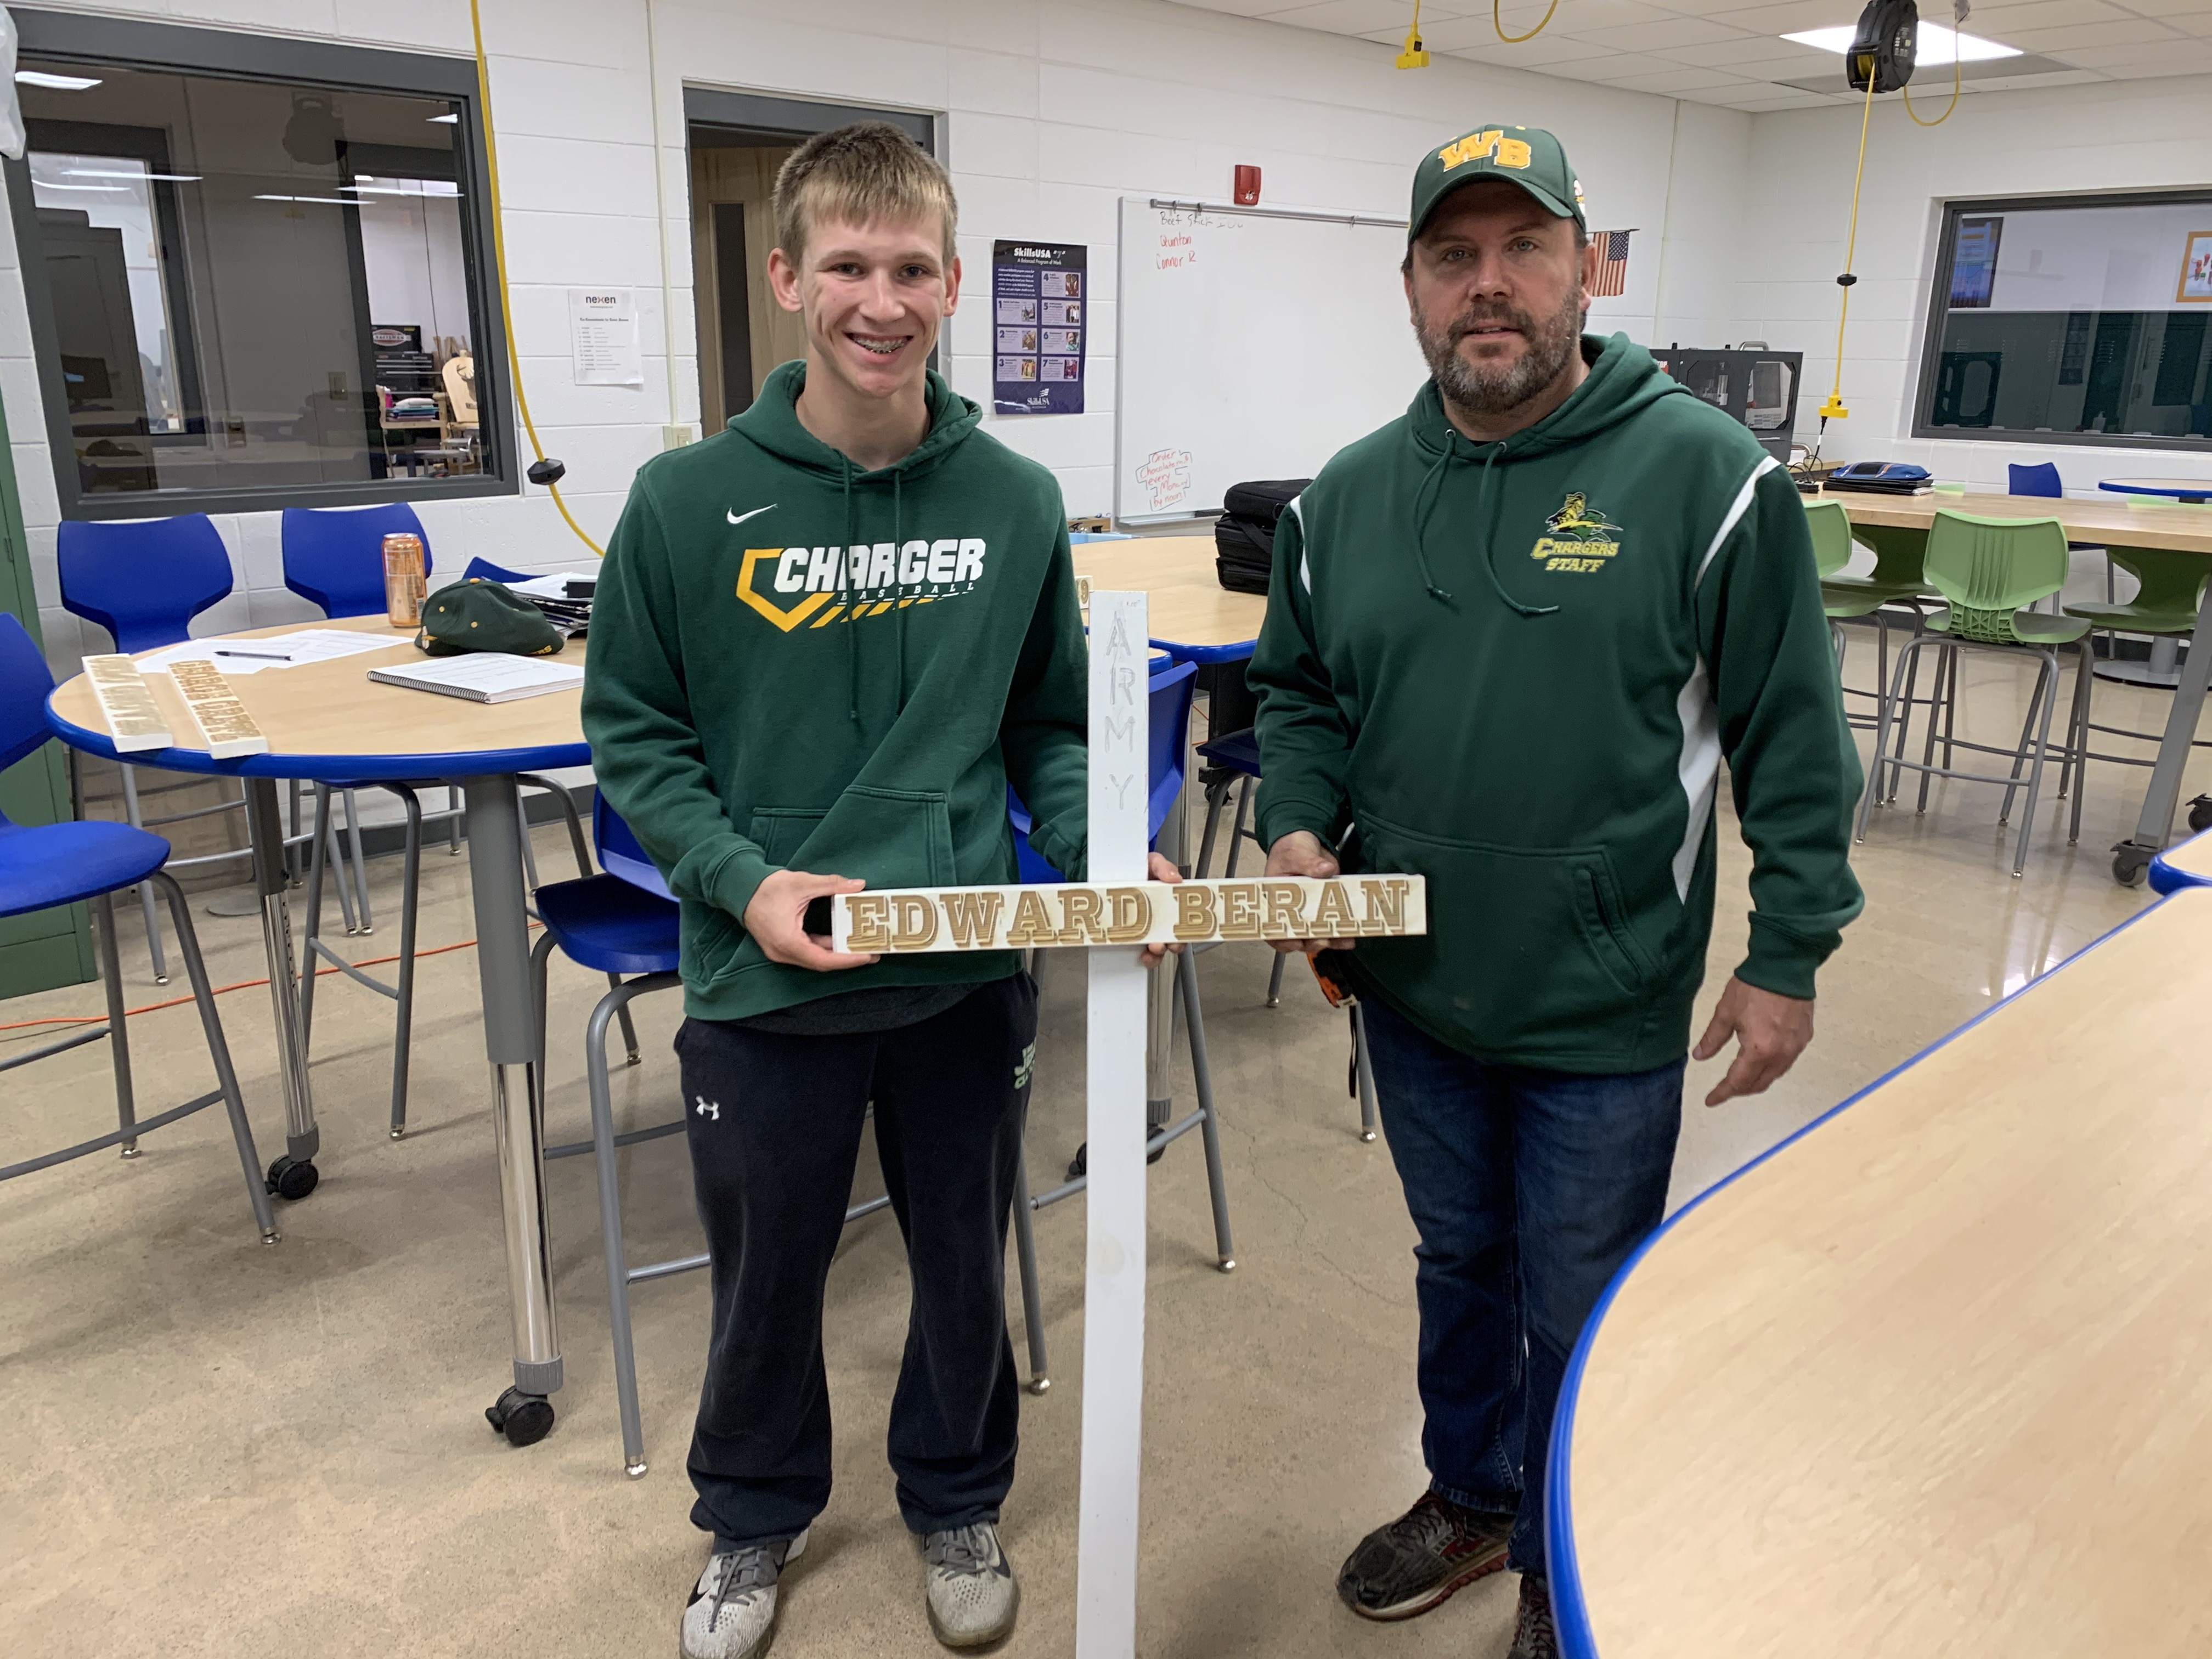 Wittenberg-Birnamwood High School senior Austin Worzella and Wittenberg-Birnamwood High School technology education teacher Waylon Resch display a model of what the crosses will look like when they are finished. The crosses will display the name of the veteran, what branch they served in and how many years they served.Luke Reimer | NEW Media